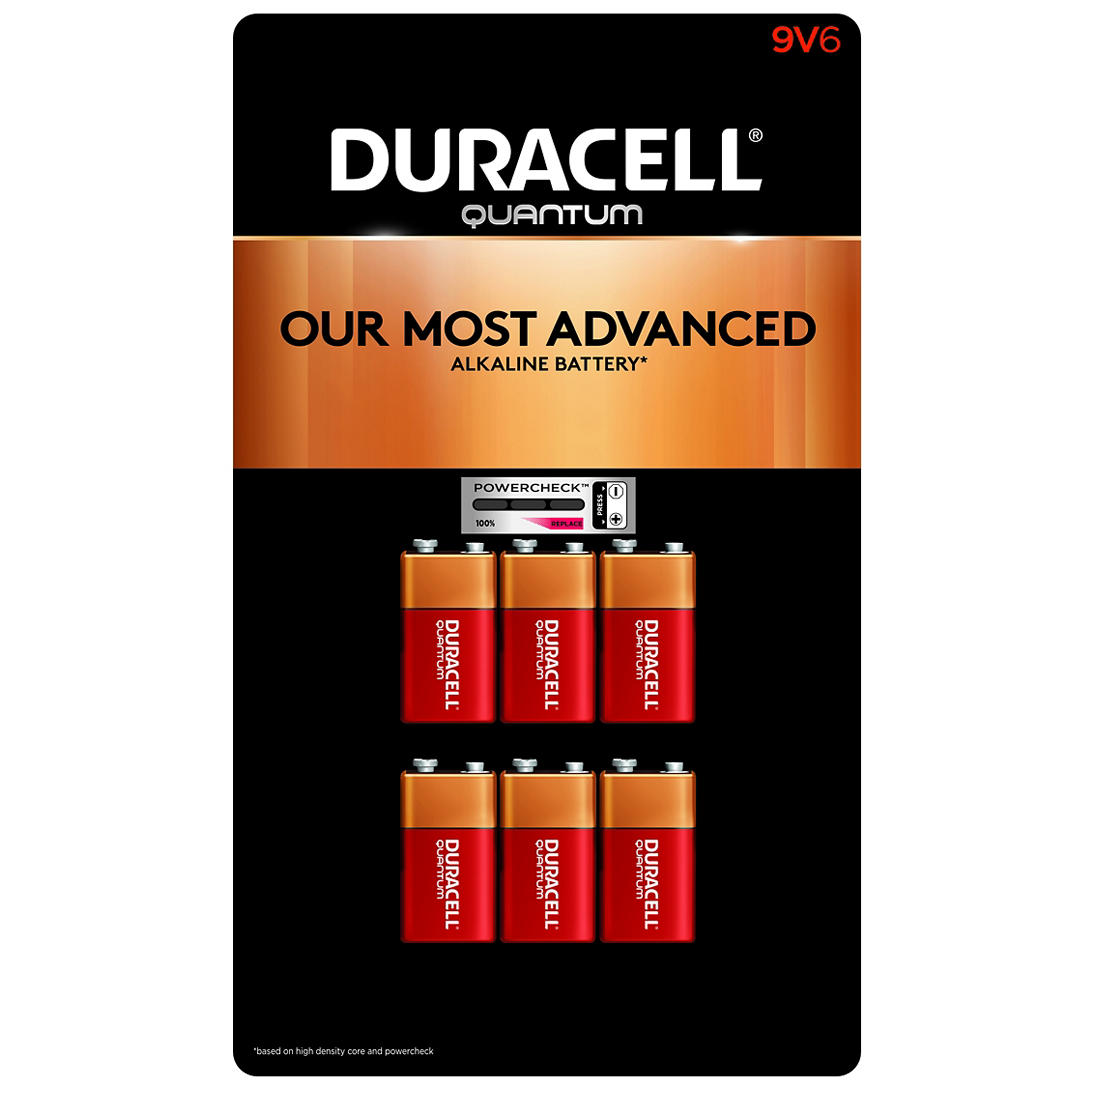 Duracell Quantum 9v Batteries 6 Ct